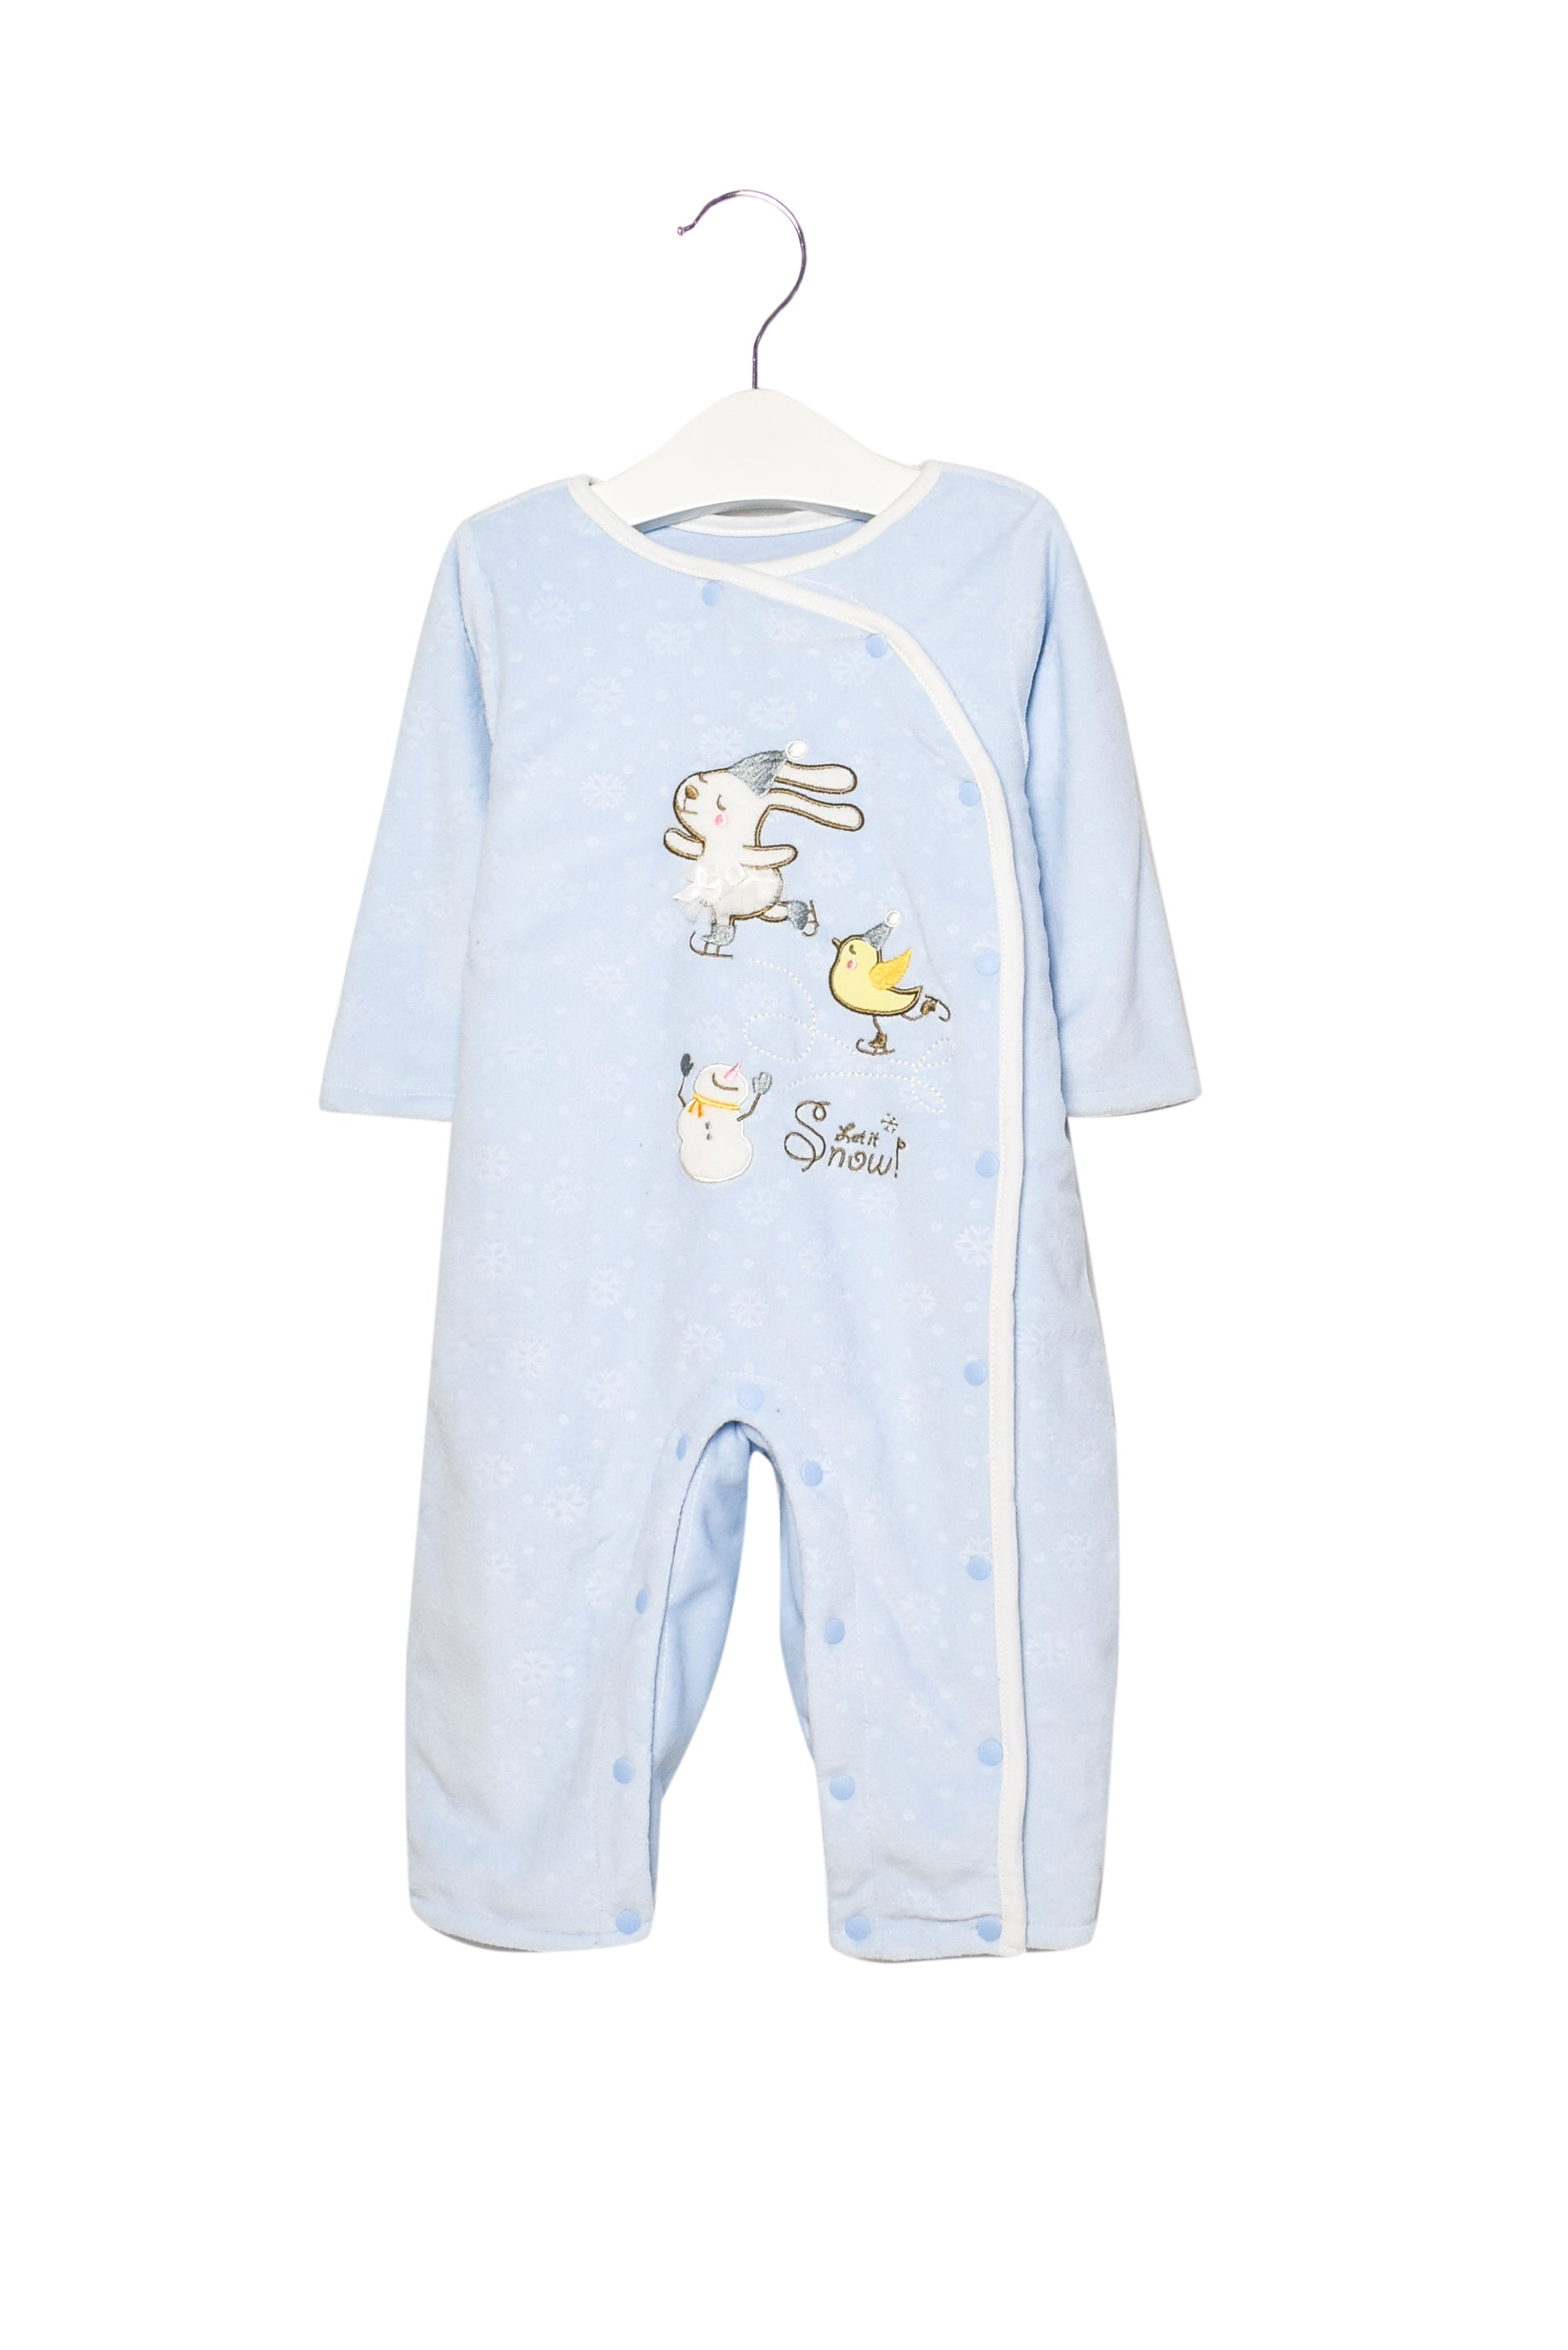 10011917 Chickeeduck Baby ~ Sleepsuit 3-6M (73 cm) at Retykle